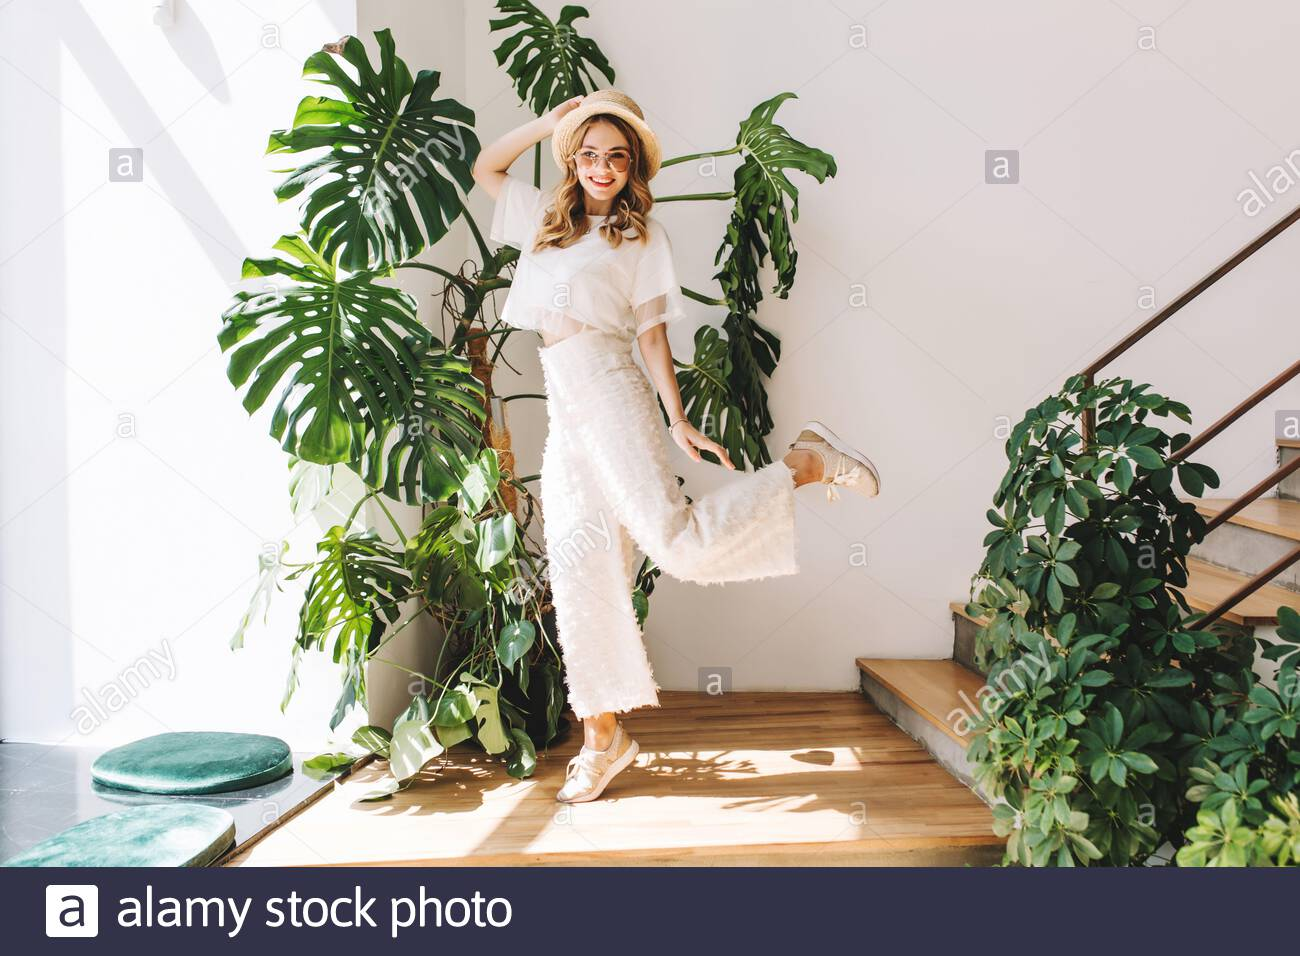 Ecstatic blonde girl in white pants funny dancing at home posing in front of big plant. Indoor portrait of jumping young woman in hat and glasses happy smiling next to stairs. Stock Photo